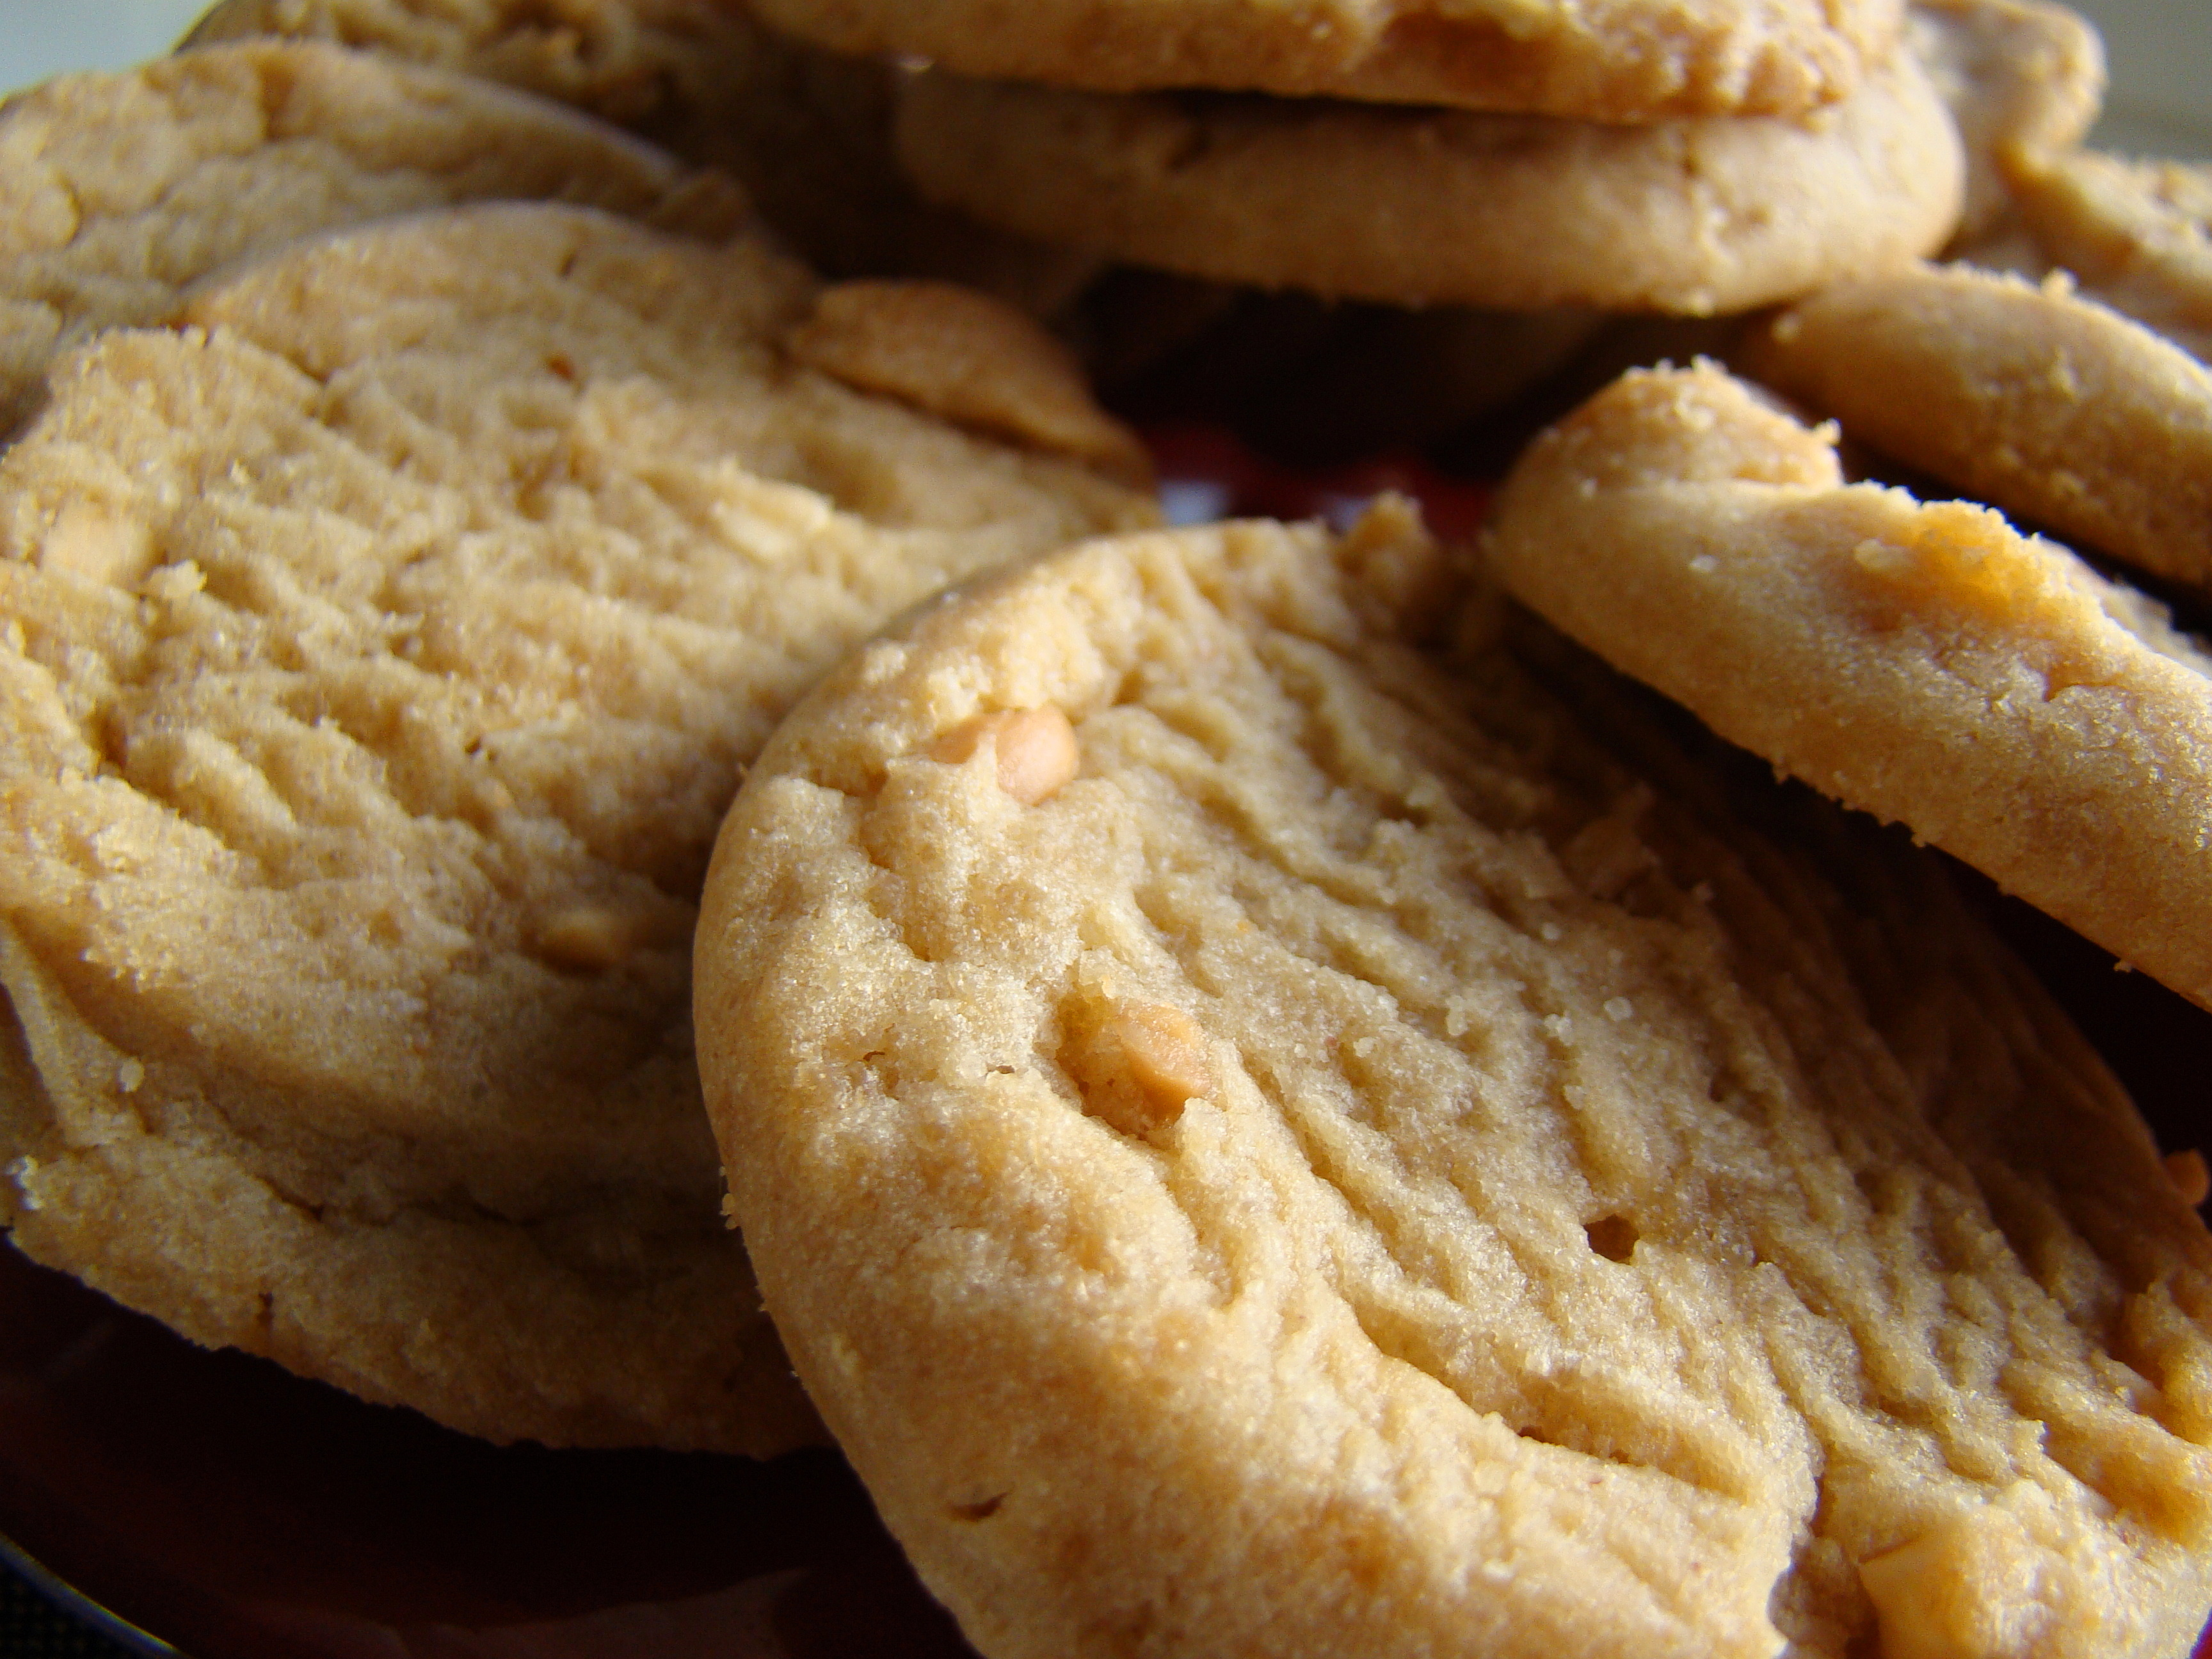 File:Peanut butter cookies, September 2009.jpg - Wikimedia Commons